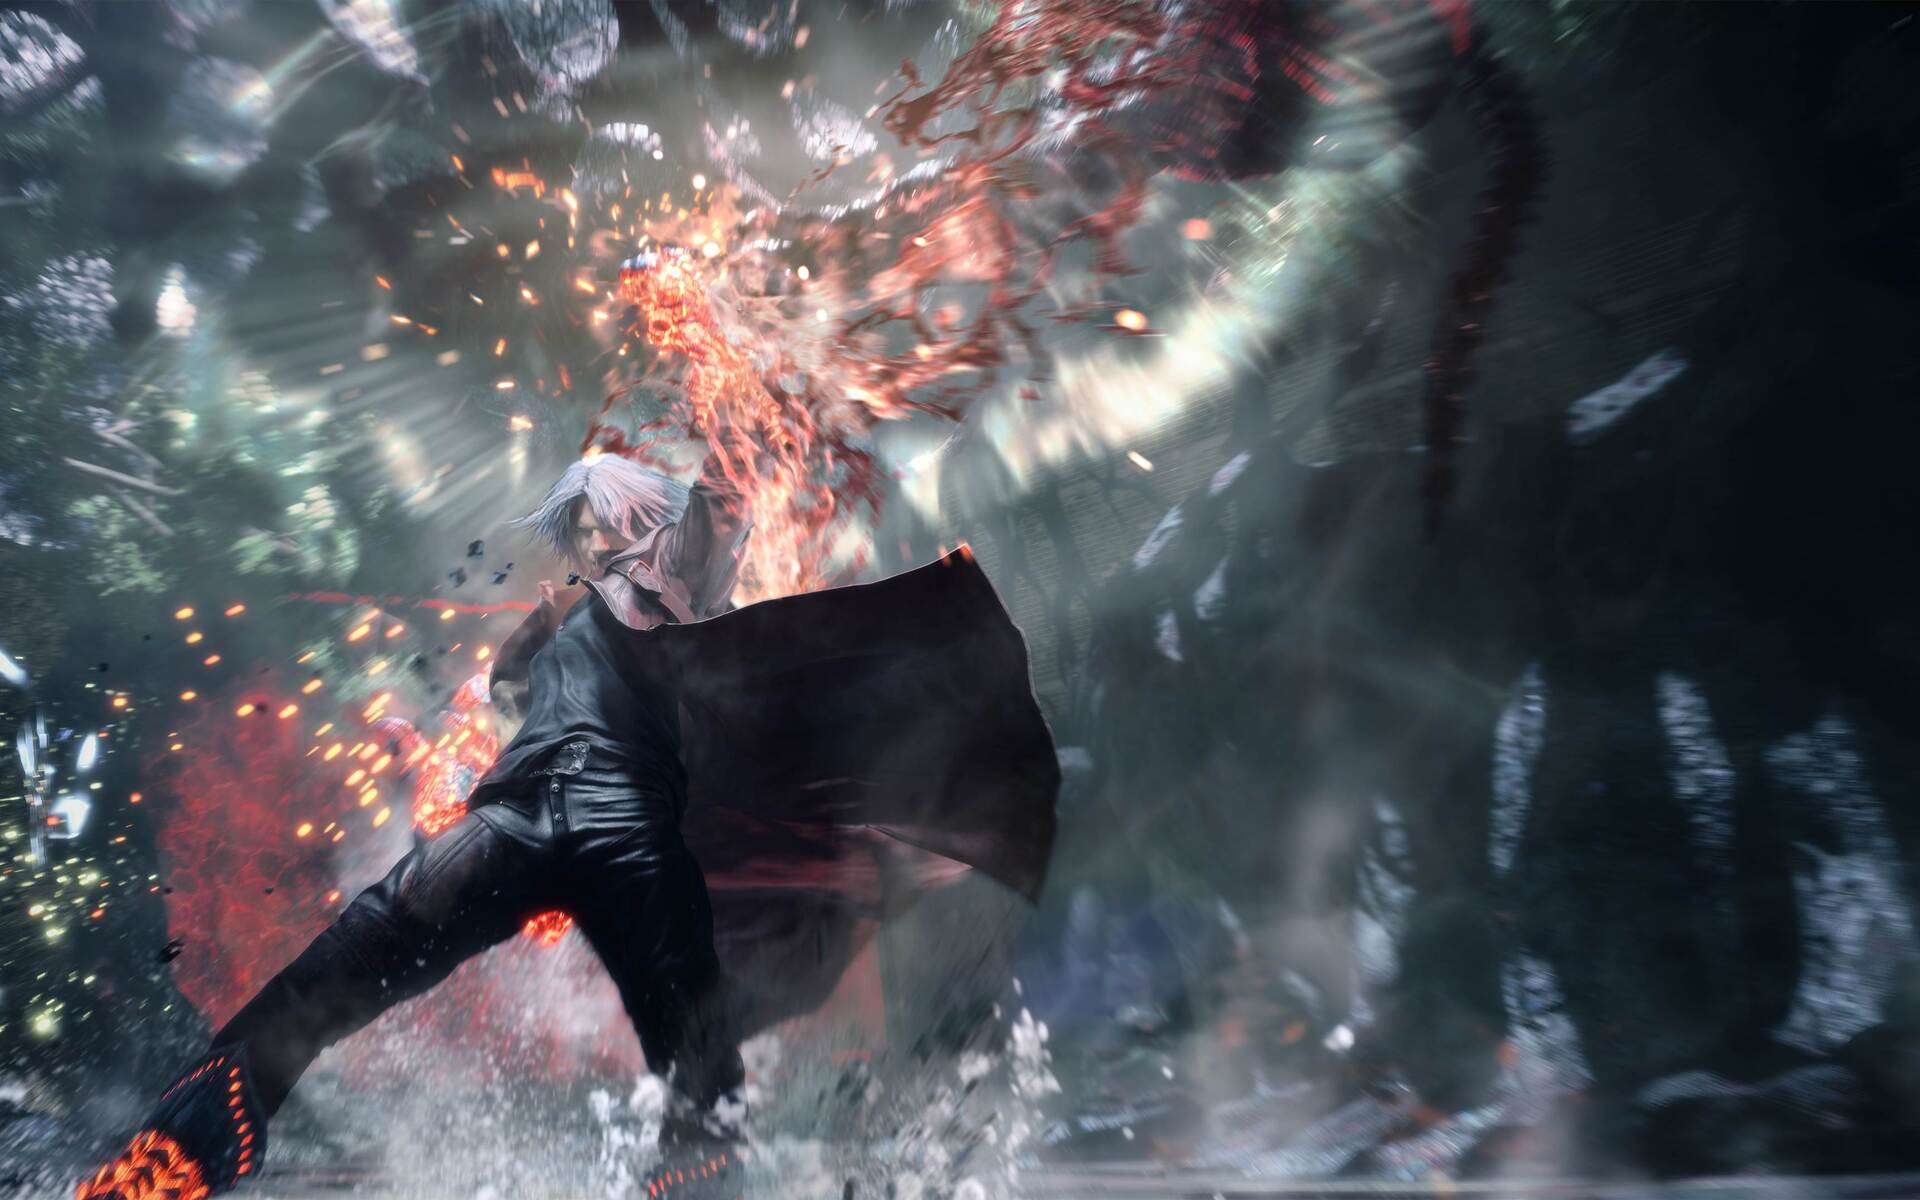 1920x1200 Devil May Cry 5 4k 2019 Game 1080p Resolution Hd